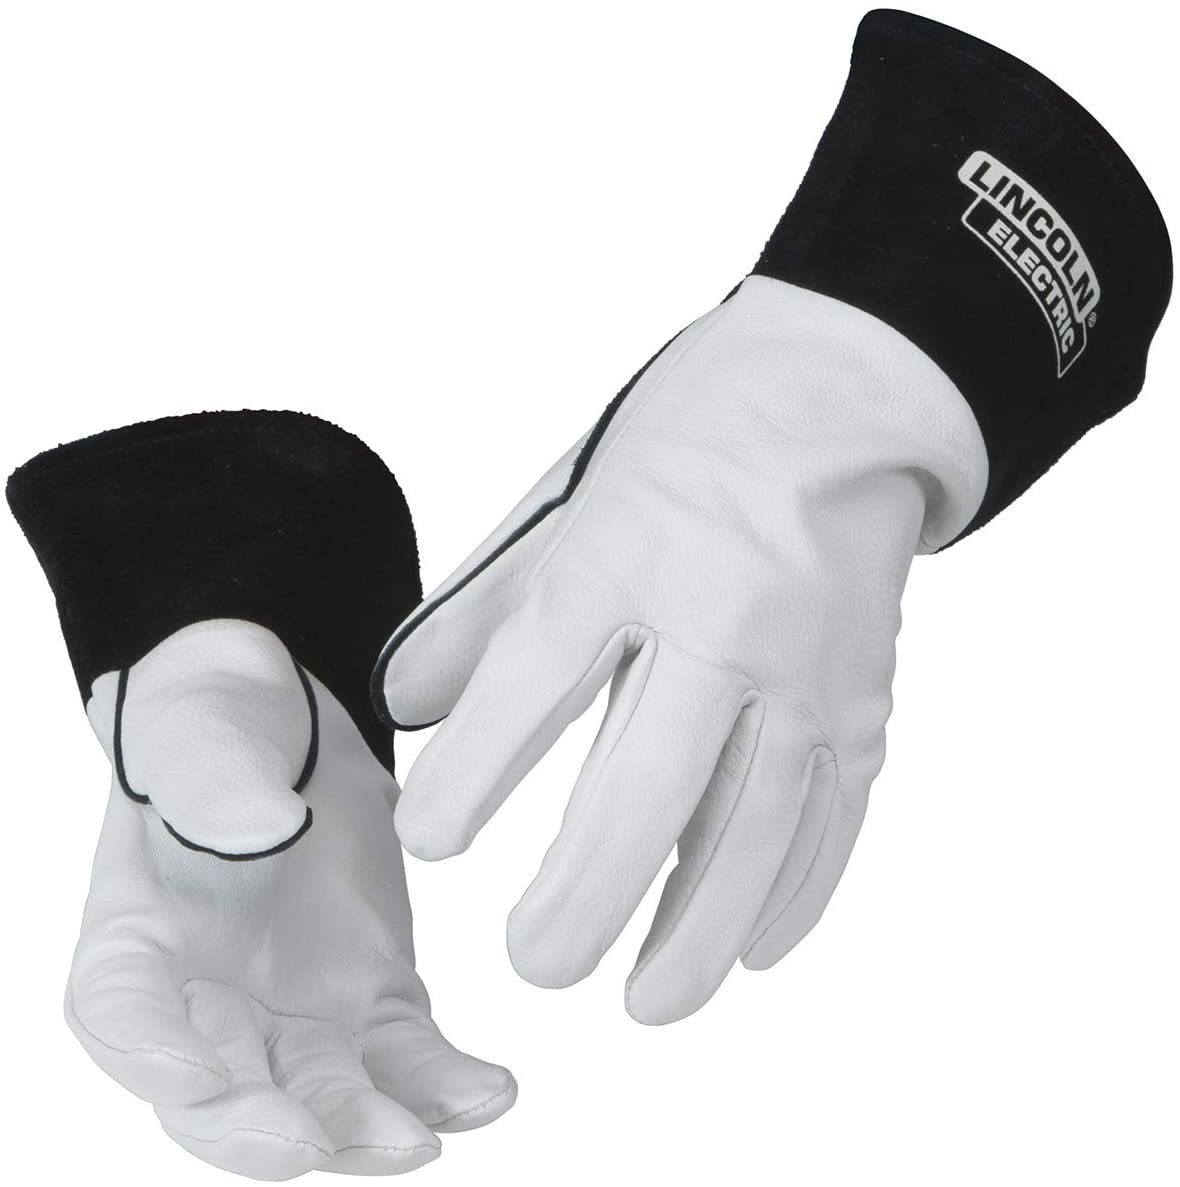 Lincoln Electric Grain Leather TIG Welding Gloves